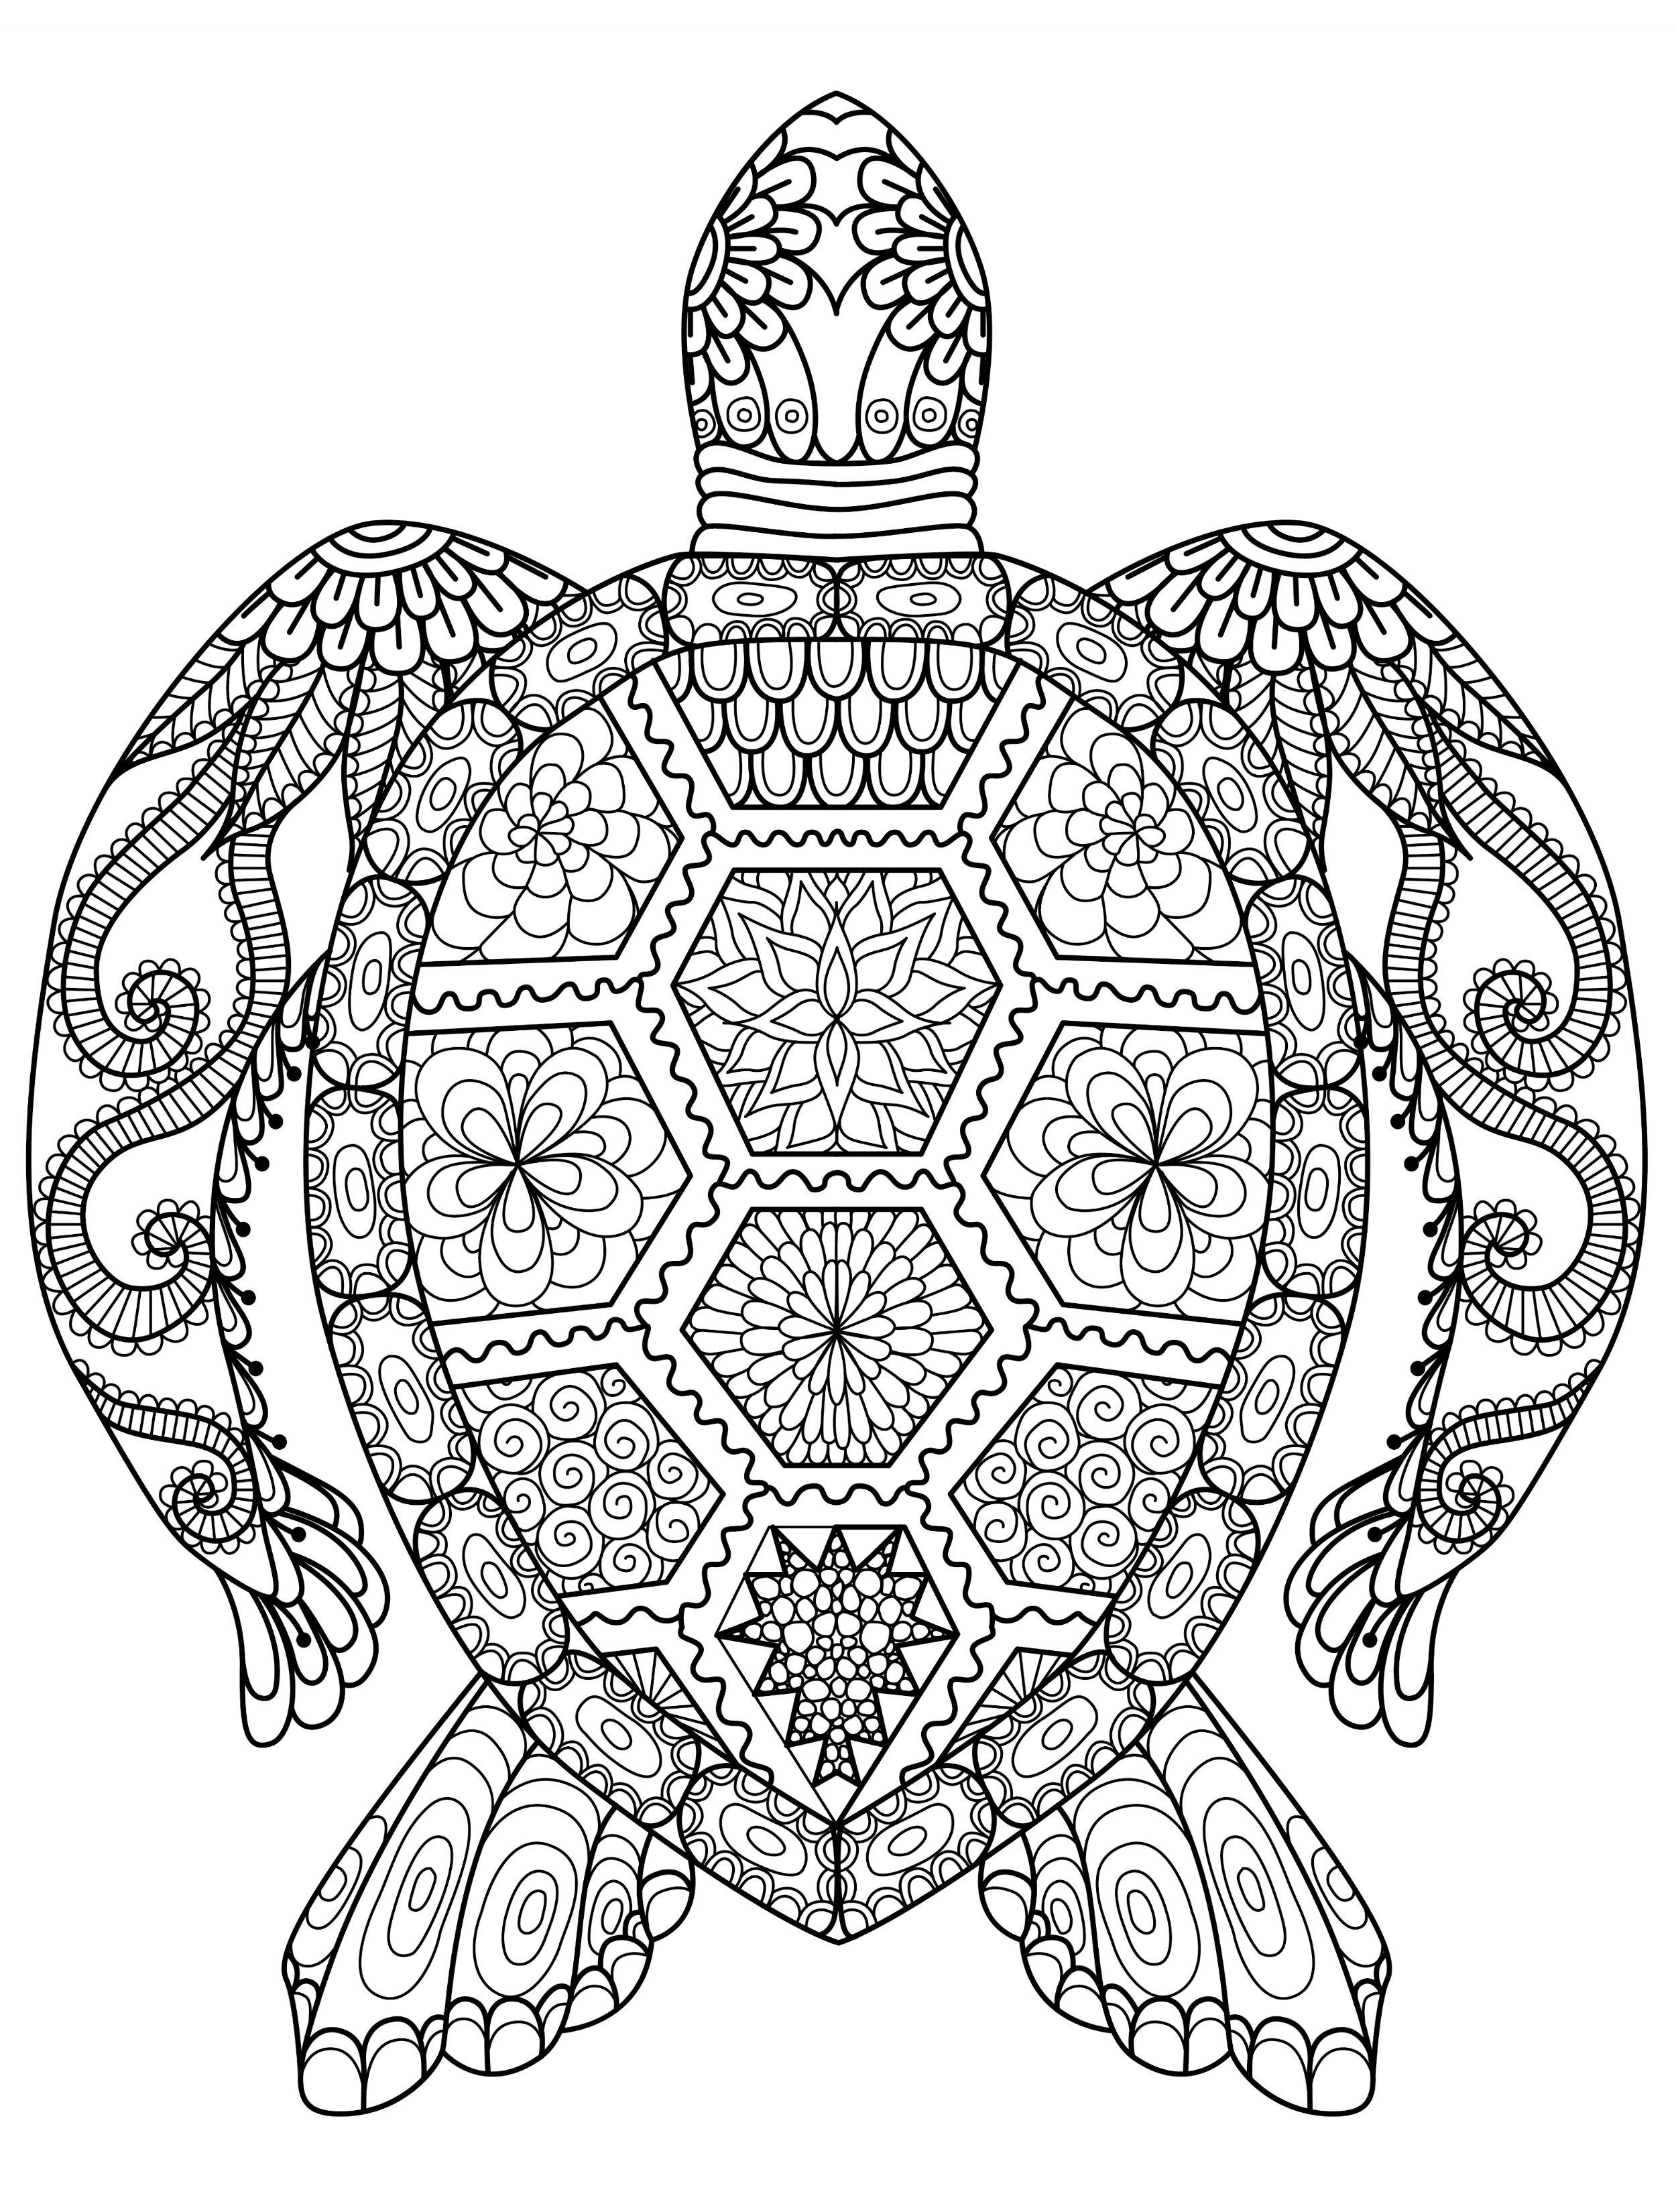 adult coloring pages download | sea turtle coloring page for adults for free download ...